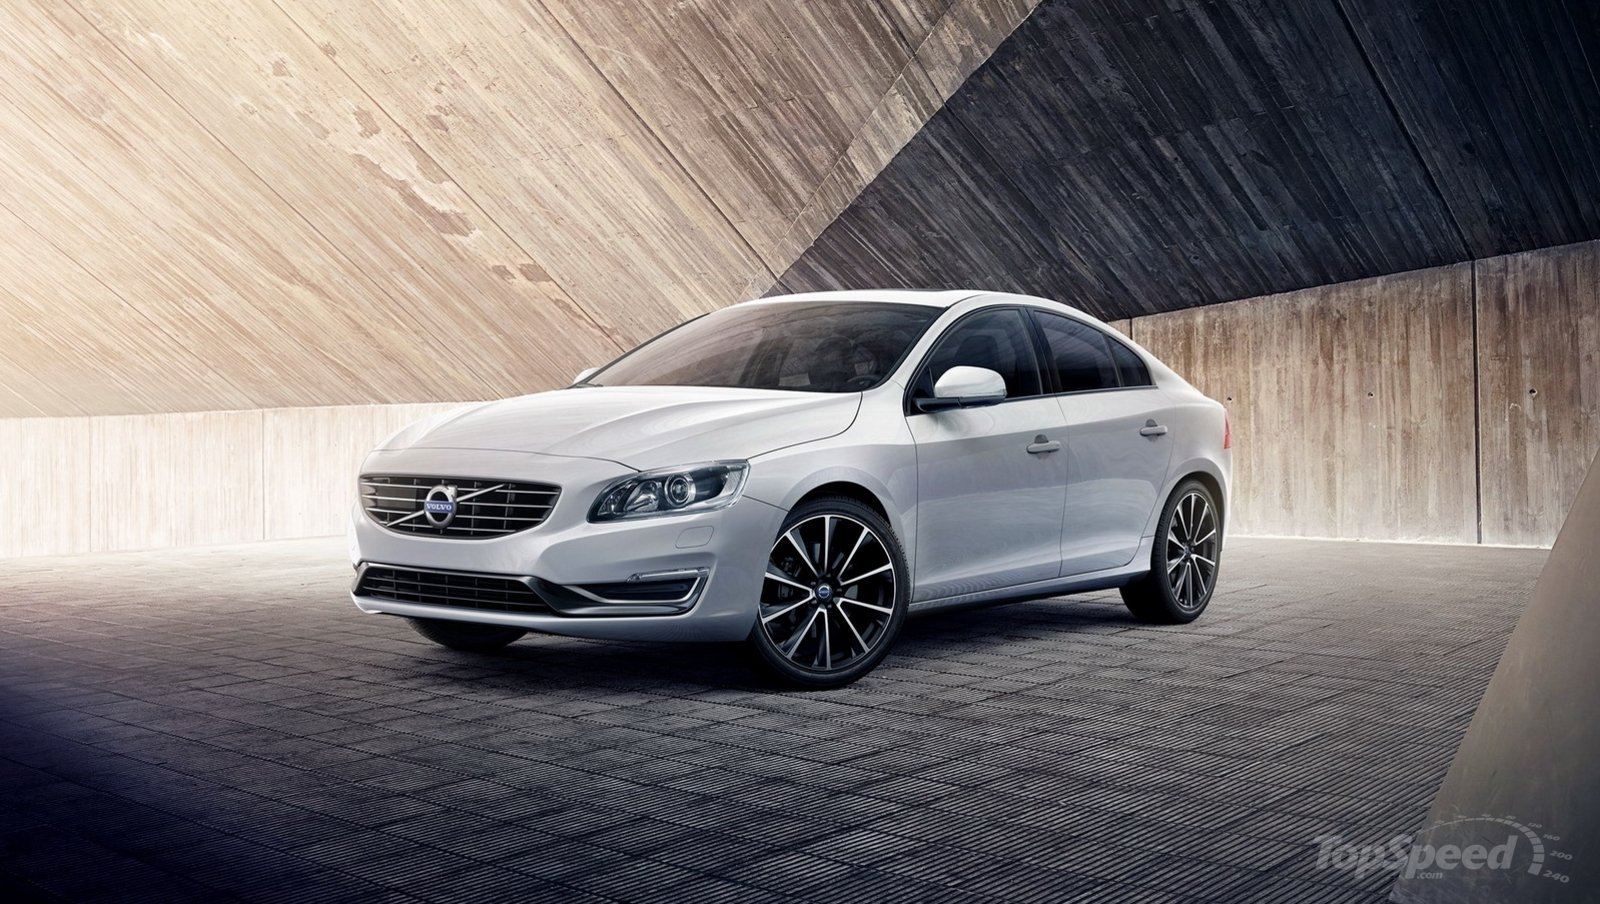 2016 Volvo S80 >> 2017 Volvo S60 Edition Review - Top Speed